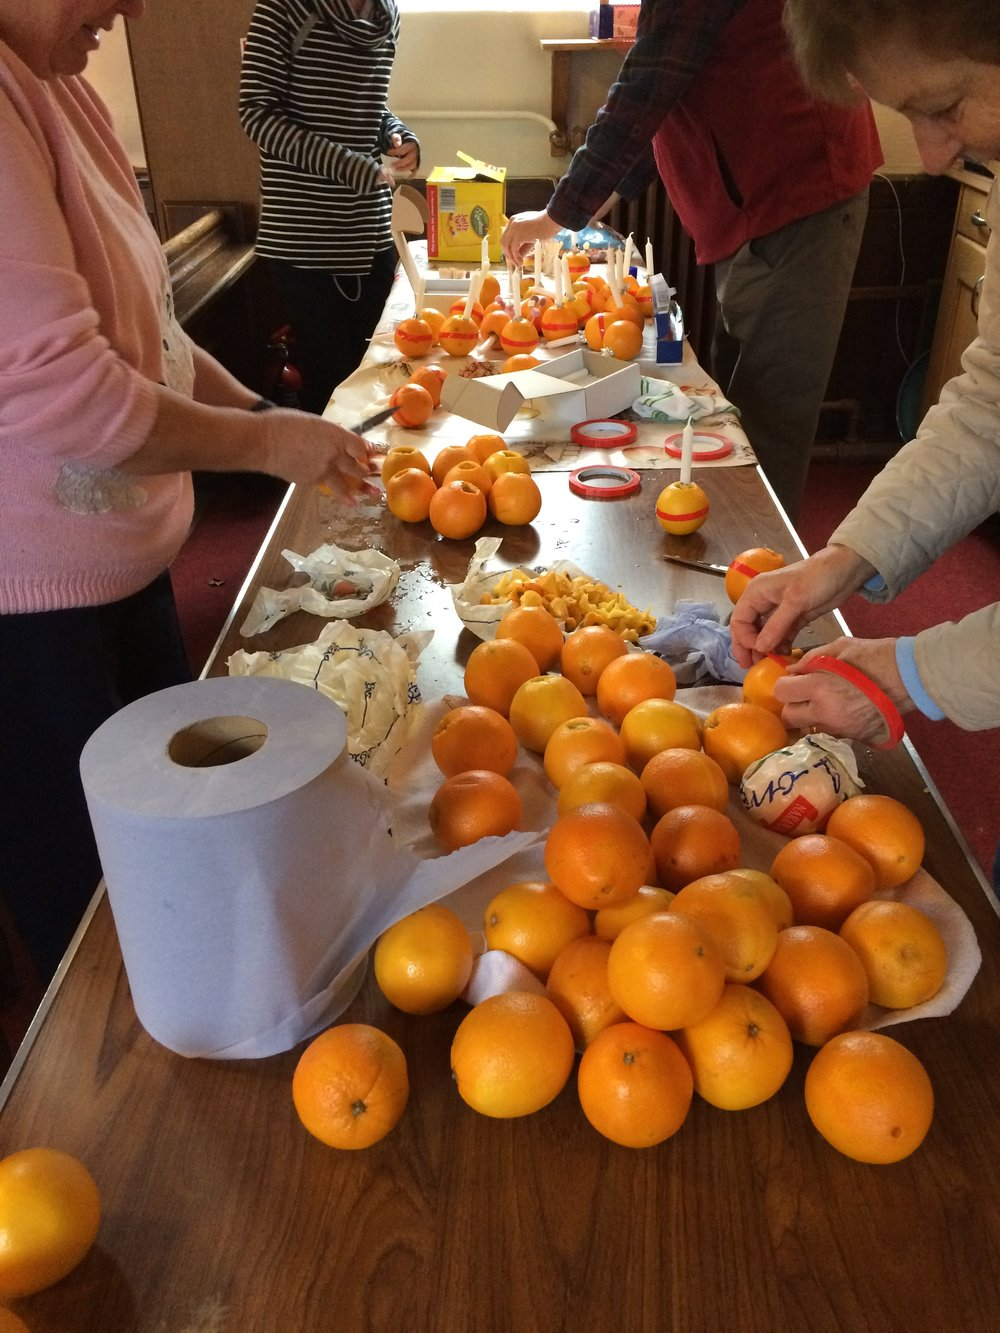 If you wish to find out more about Christingle you can do so here.